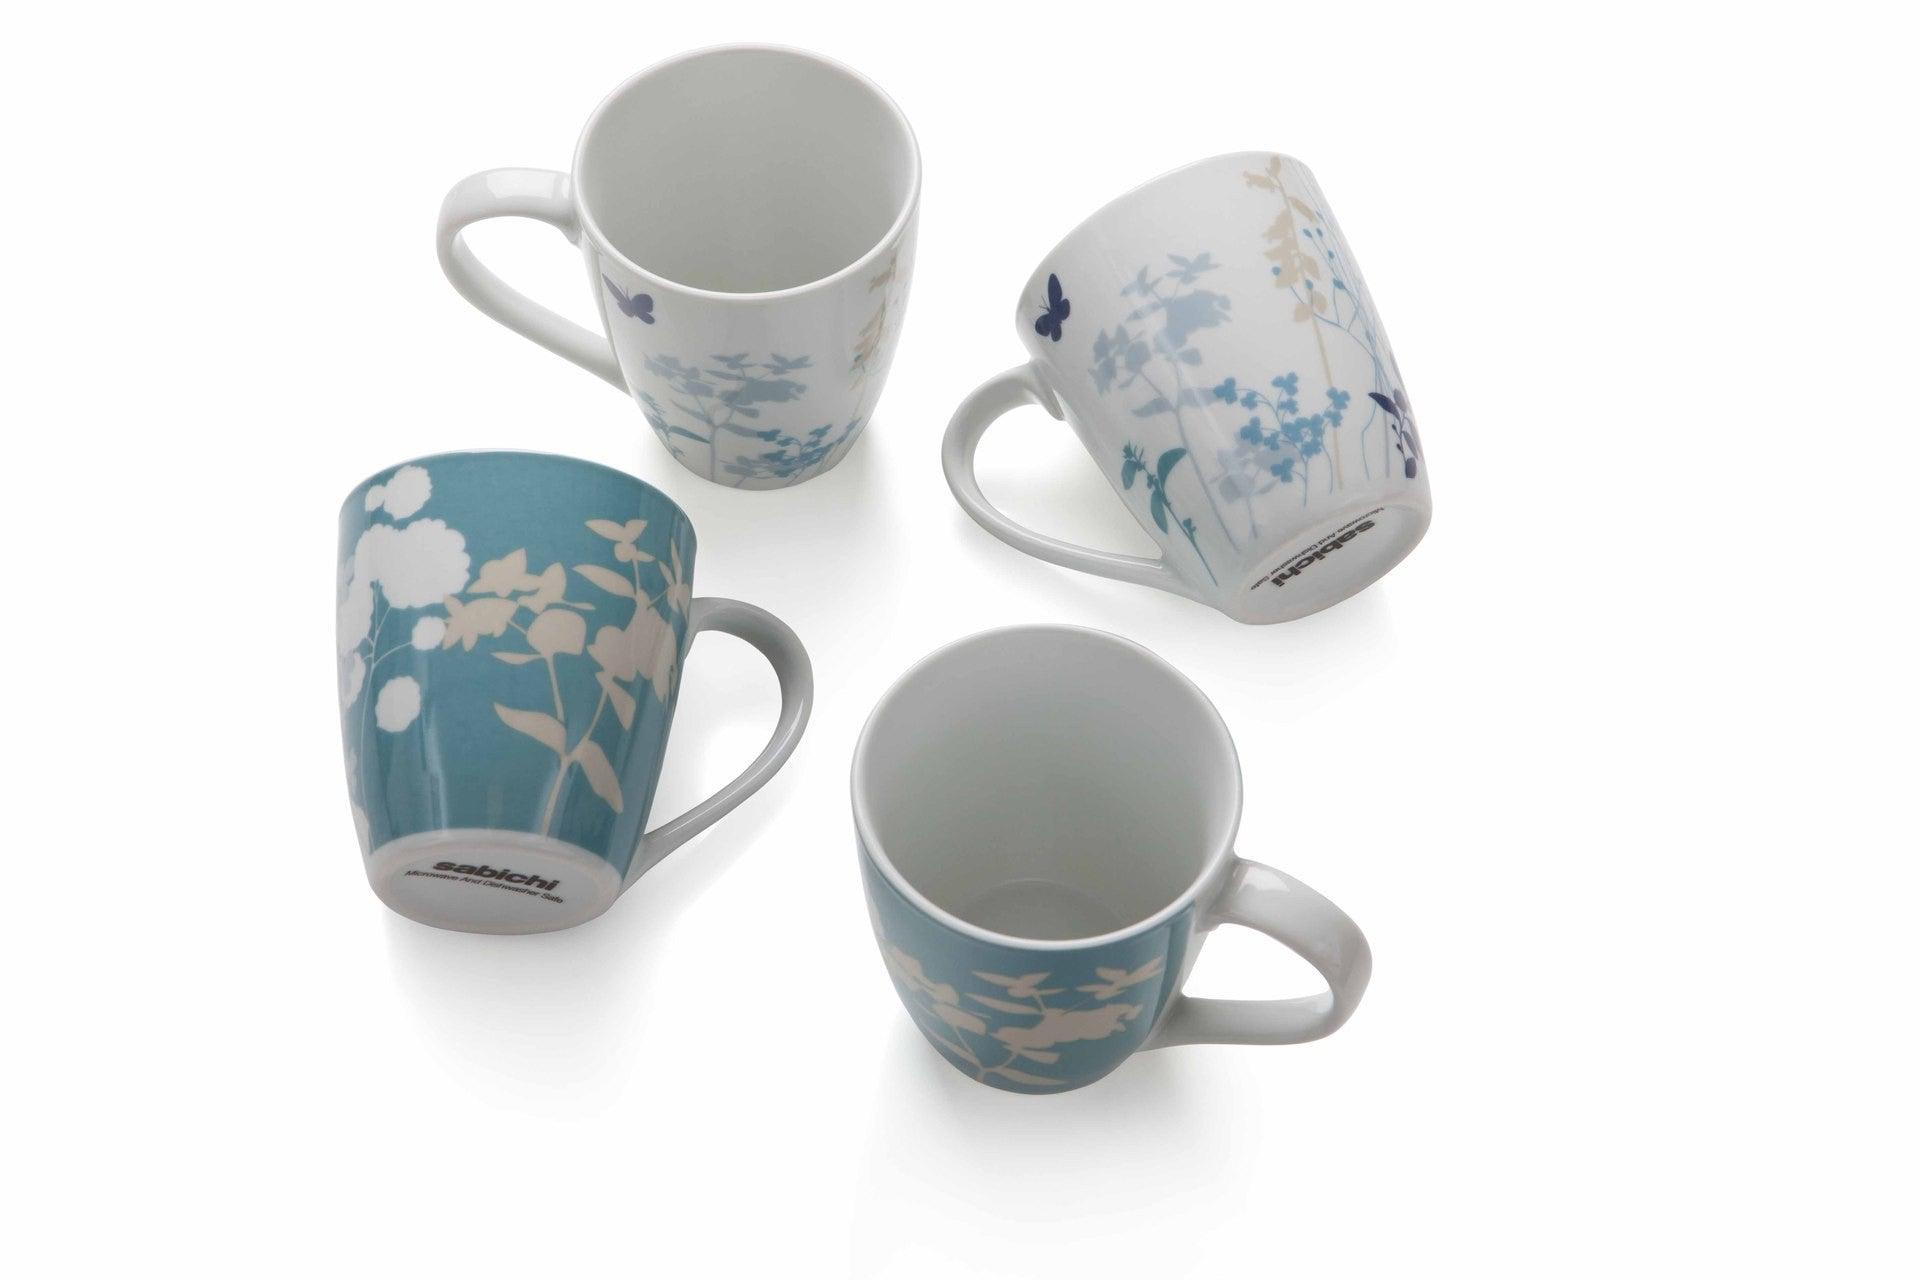 Sabichi 4Pcs Meadow Porcelain Mug Set- 172846 - Homely Nigeria